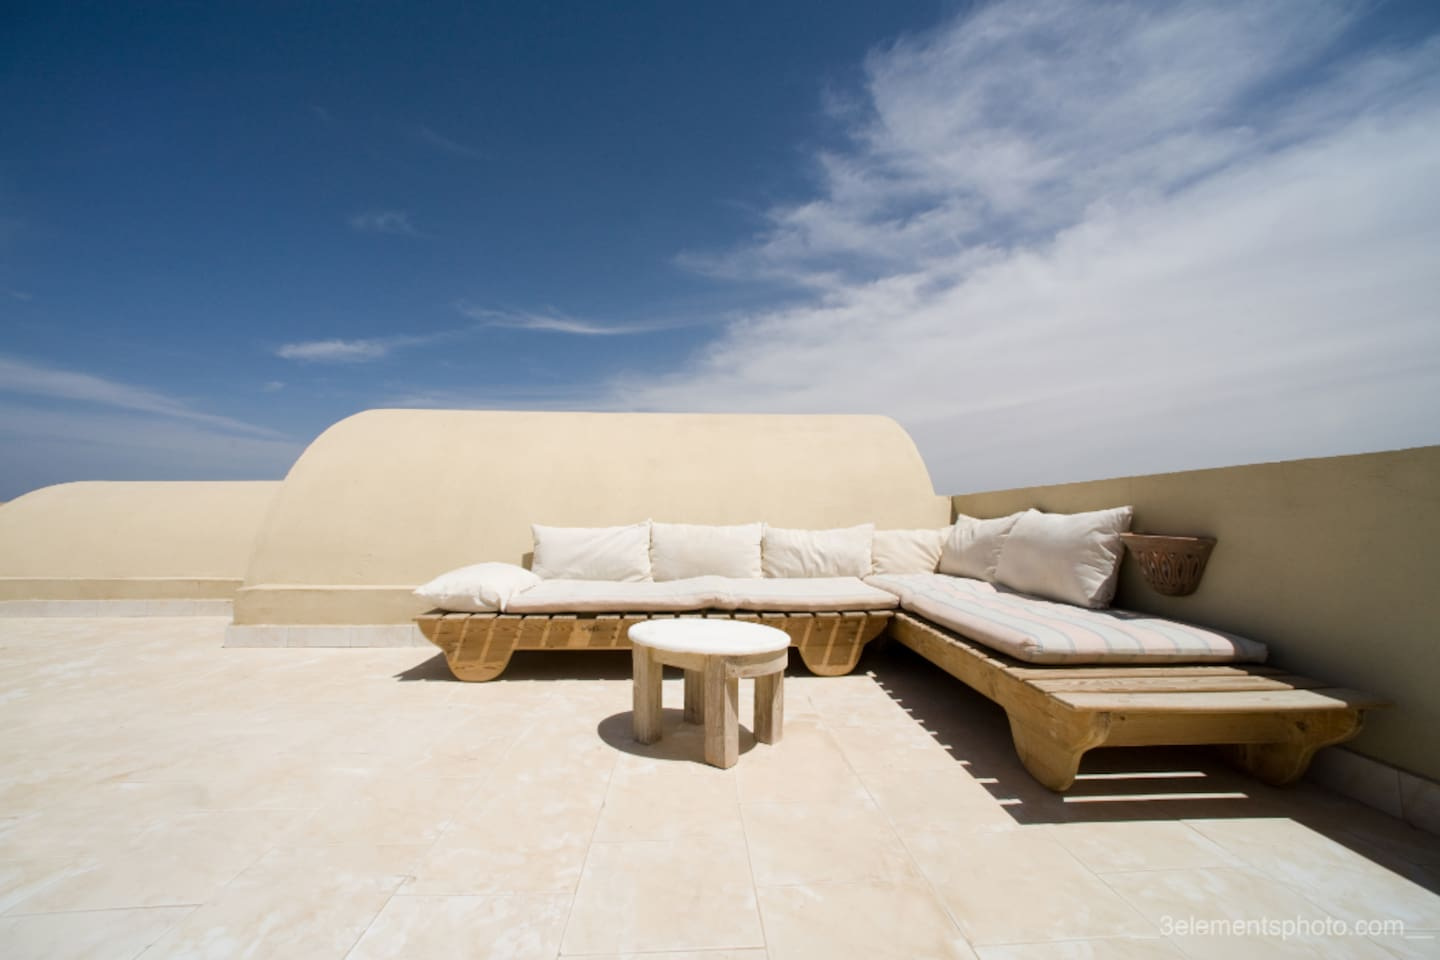 Roof terrace - perfect for sunbathing or star-gazing!